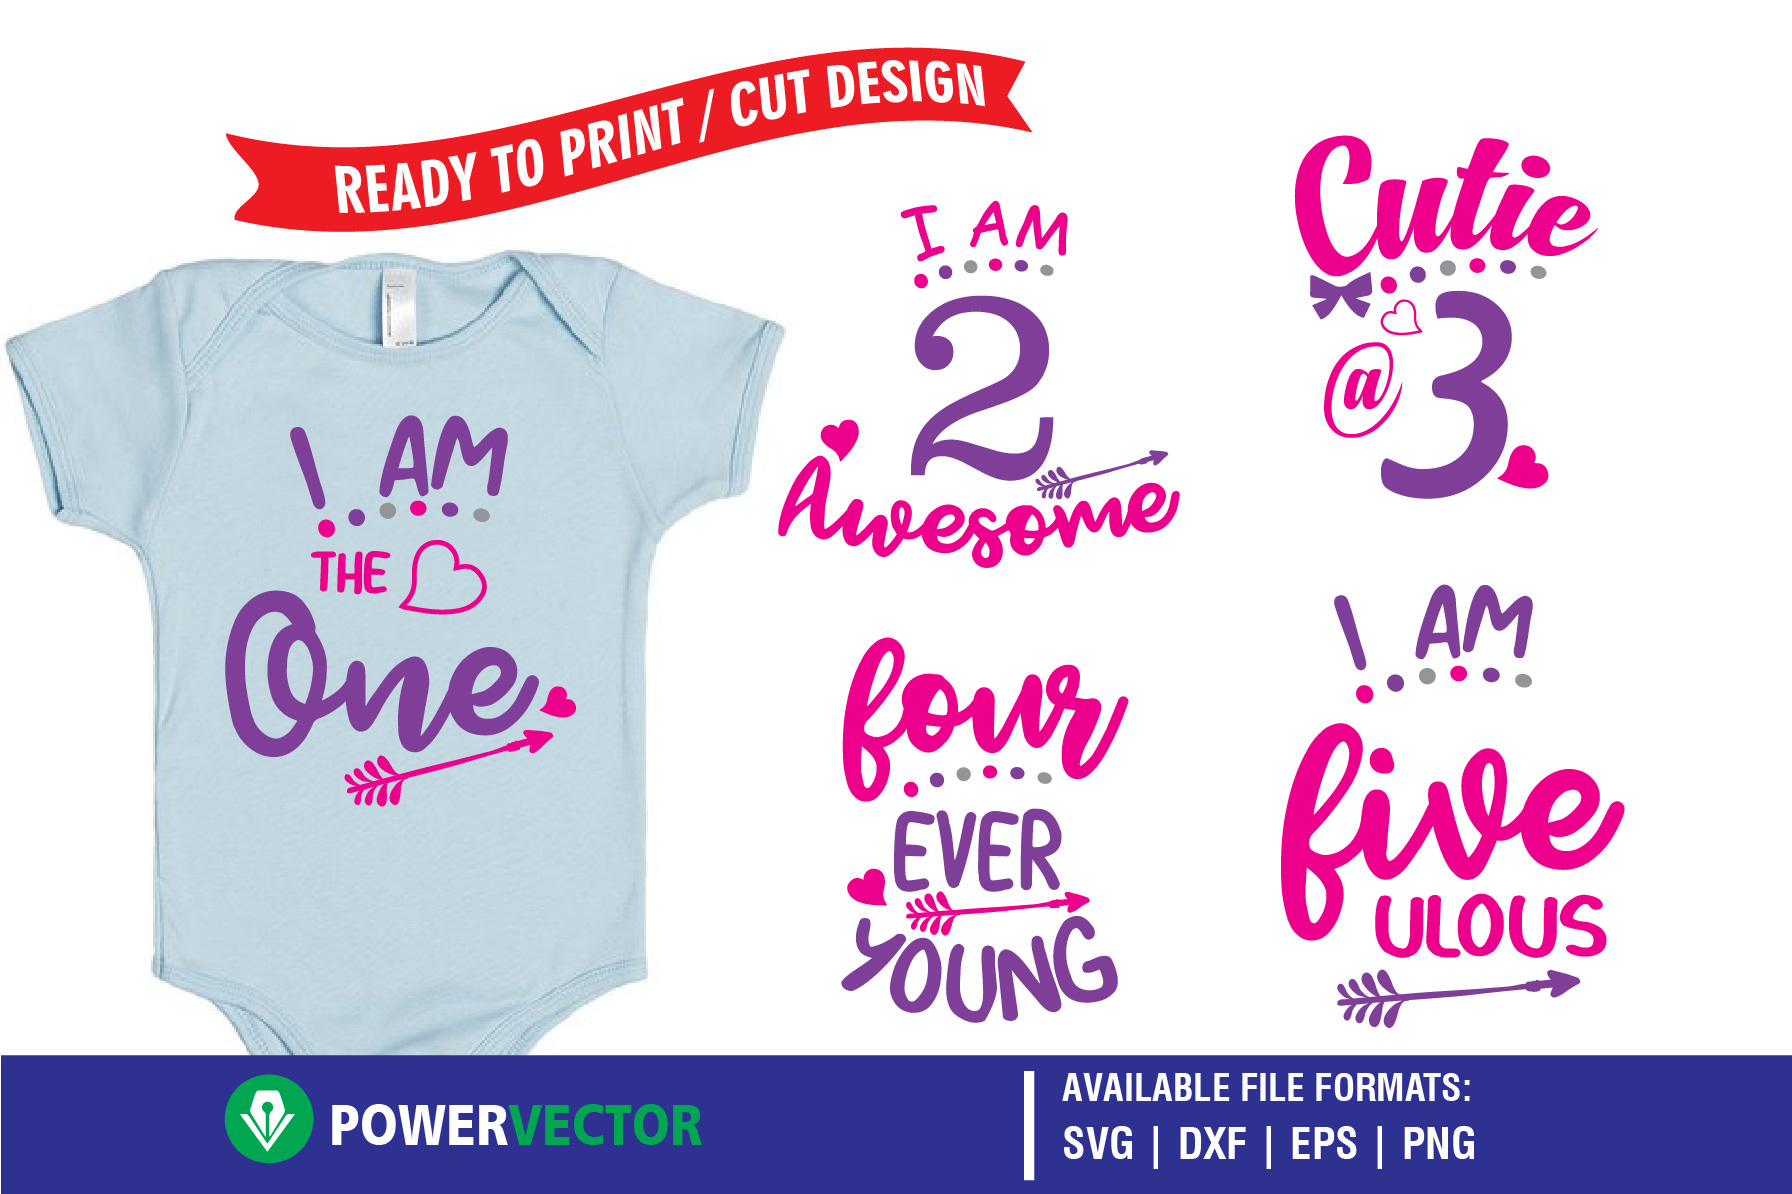 Kids Birthday Party T-Shirt Designs -Printing, Cutting Files example image 1